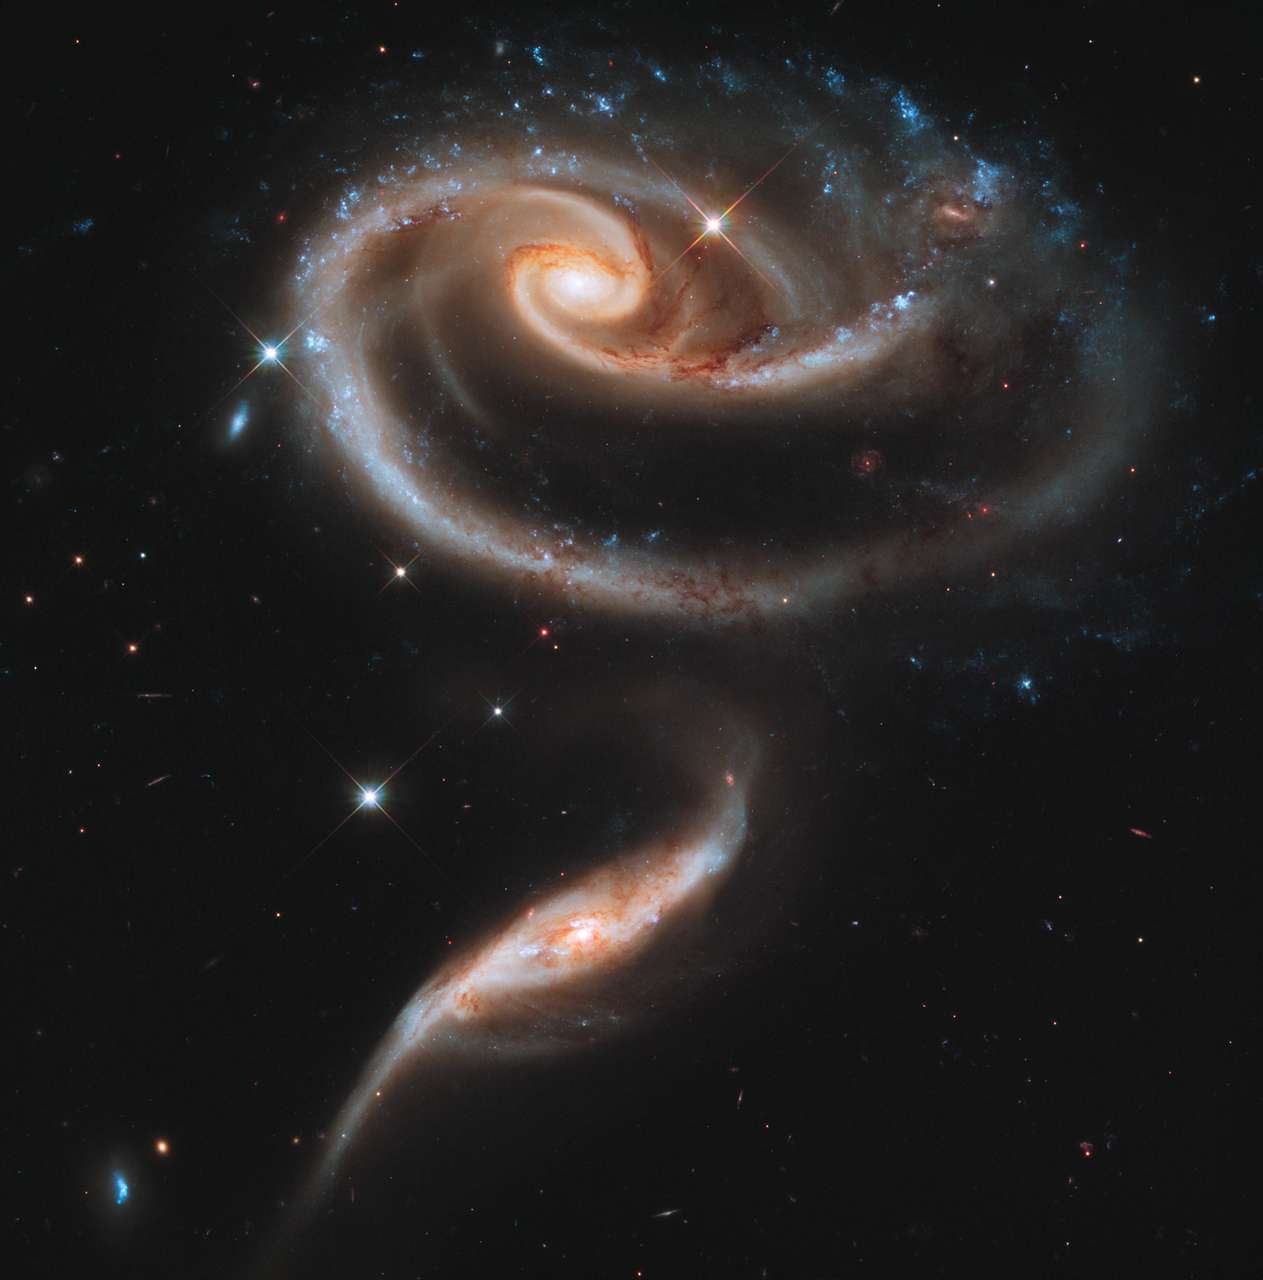 Deux galaxies en collision, le duo Arp 273. © Nasa, ESA, the Hubble Heritage Team (STScI/AURA)